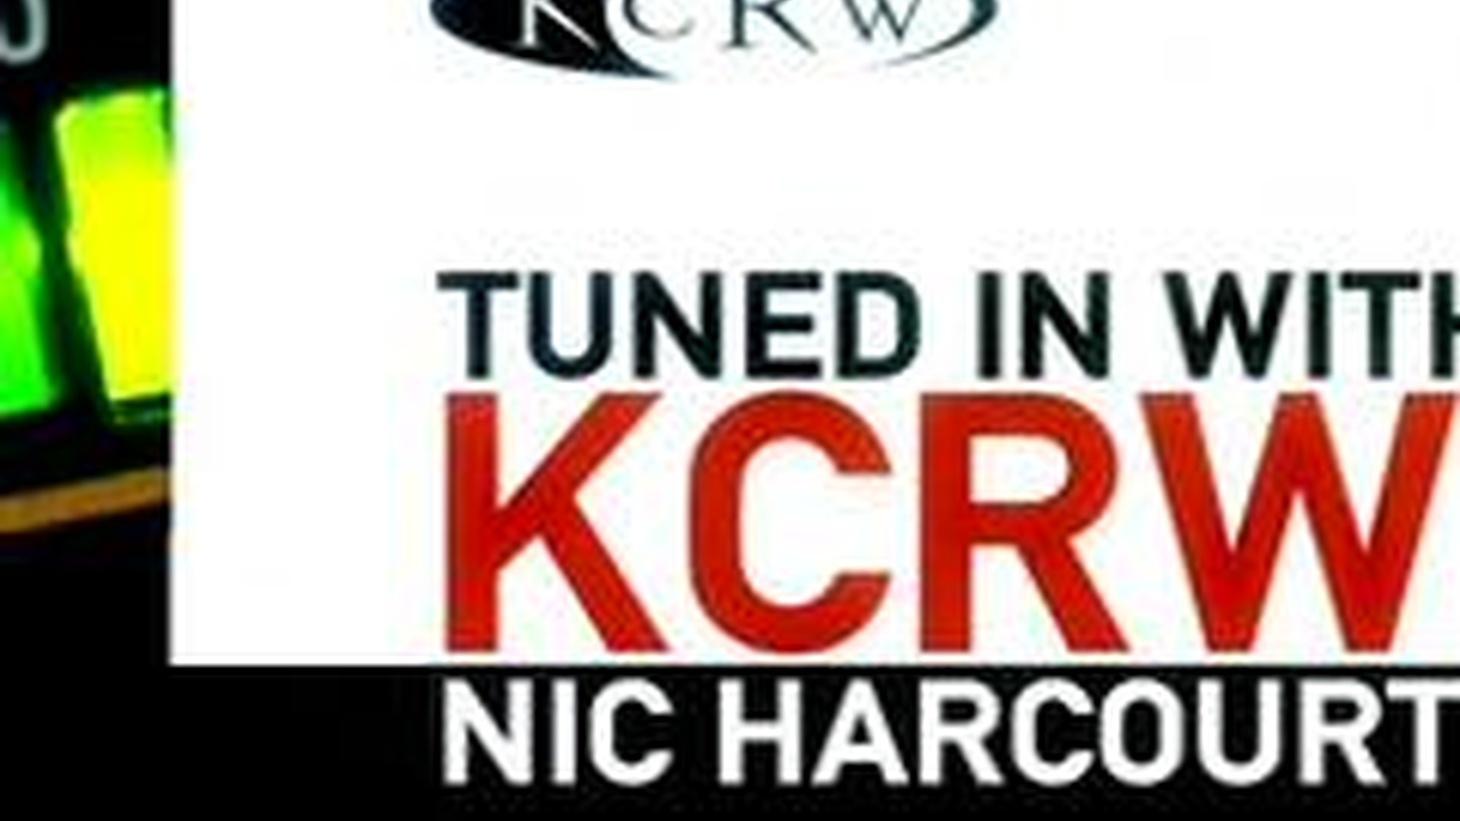 Nic Harcourt takes a look at some of the featured music on KCRW, sharing new music from albums by Fujiya and Miyagi (LIGHTBULBS), The Black Watch (ICING THE SNOW QUEEN), Pop Levi (NEVER NEVER LOVE) and...